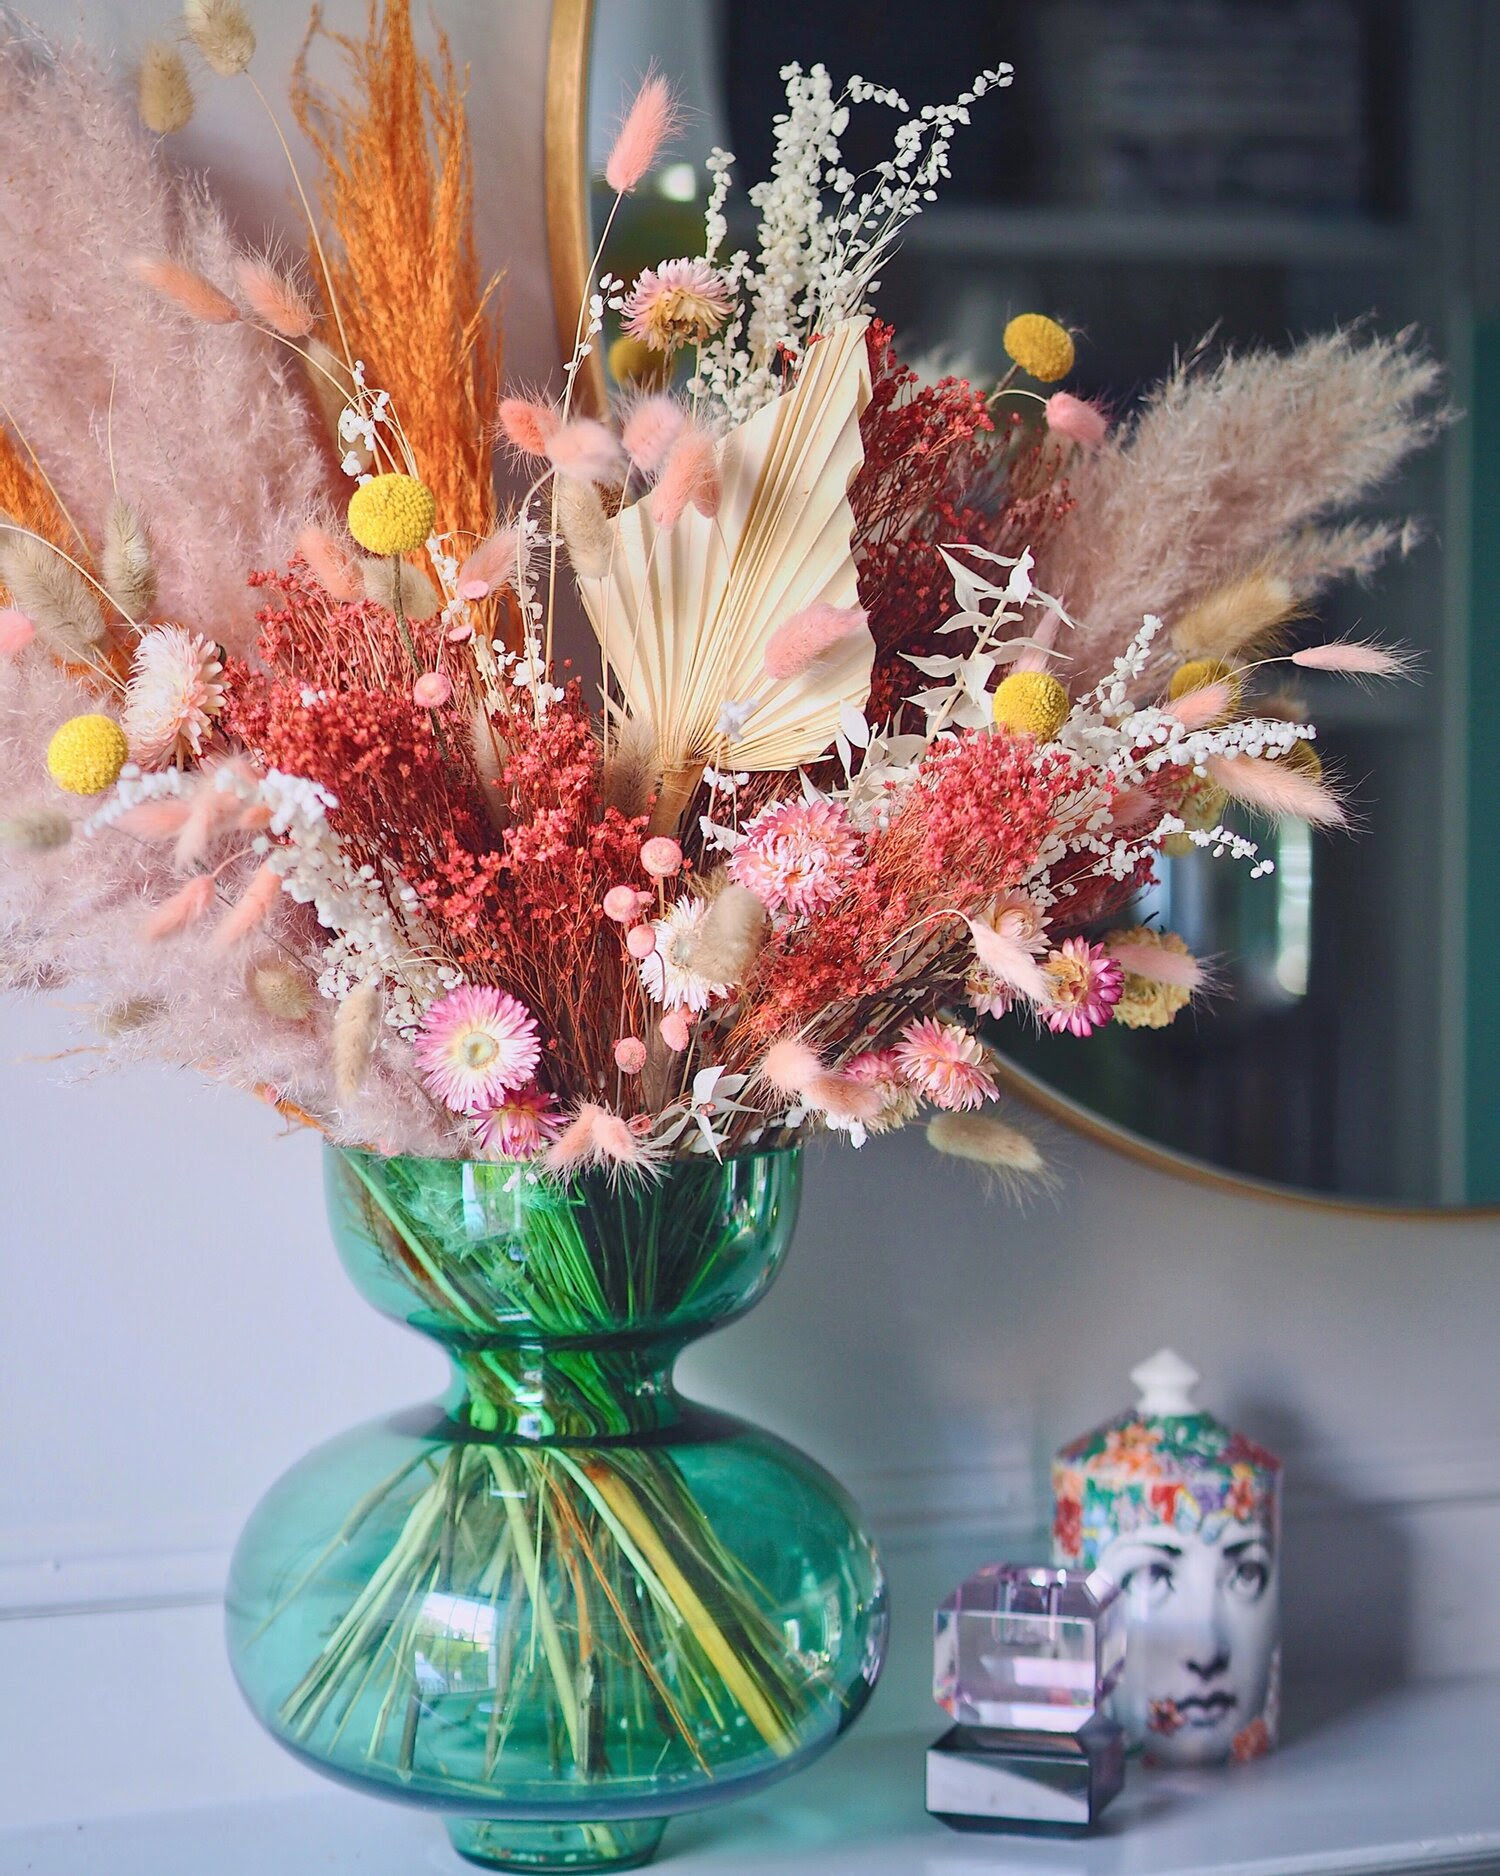 Where To Buy On Trend Dried Flowers Melanie Lissack Interiors